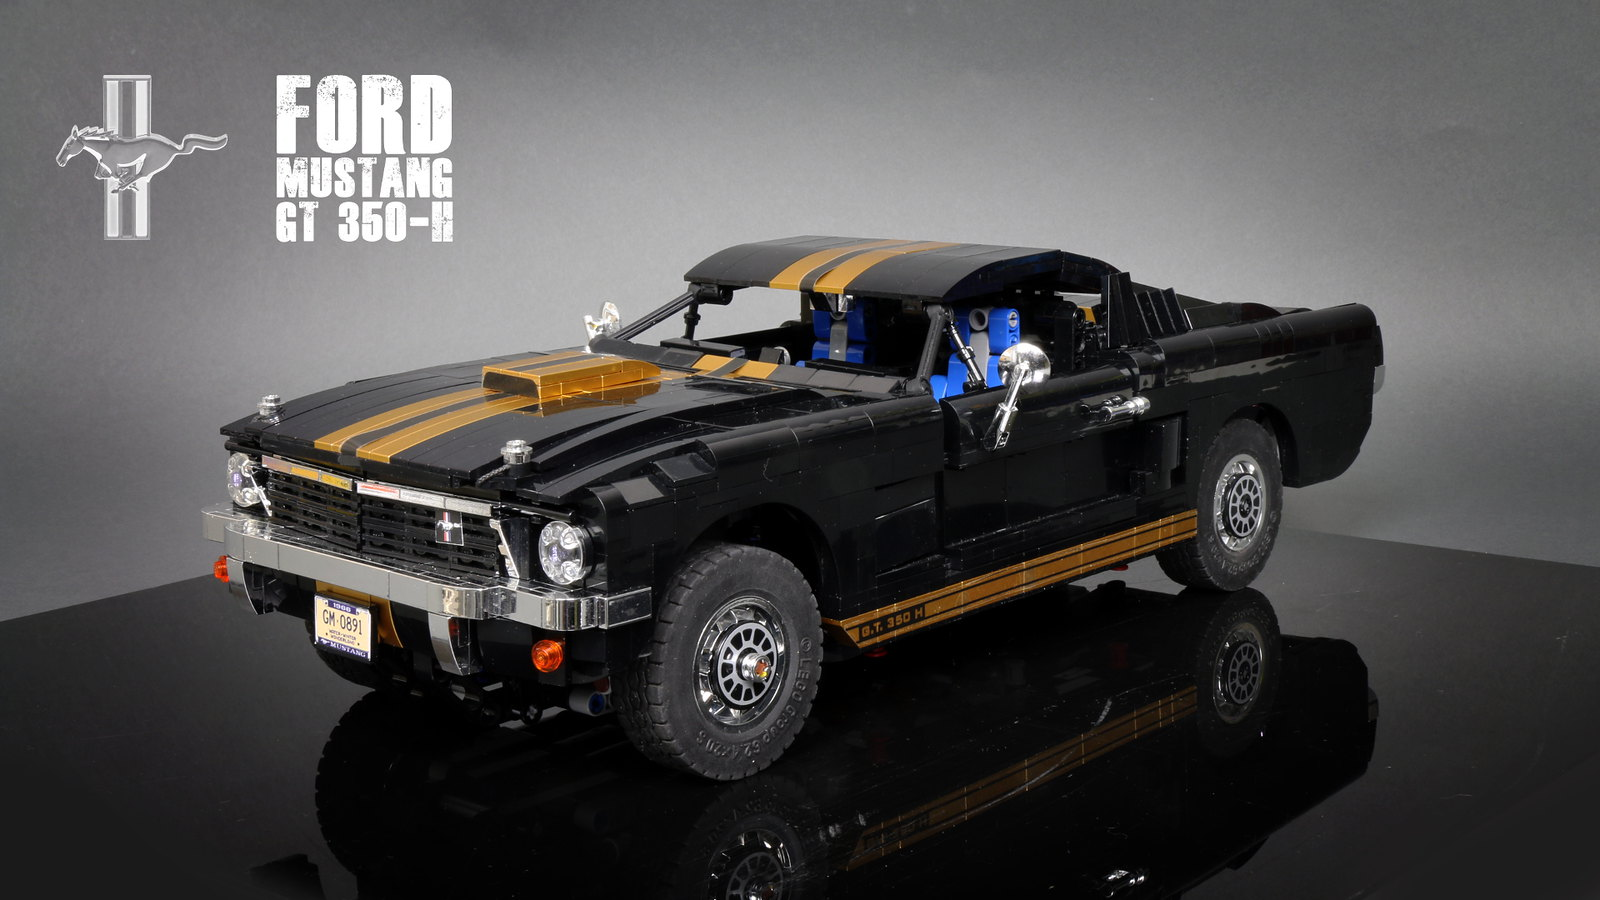 lego ford mustang instructions